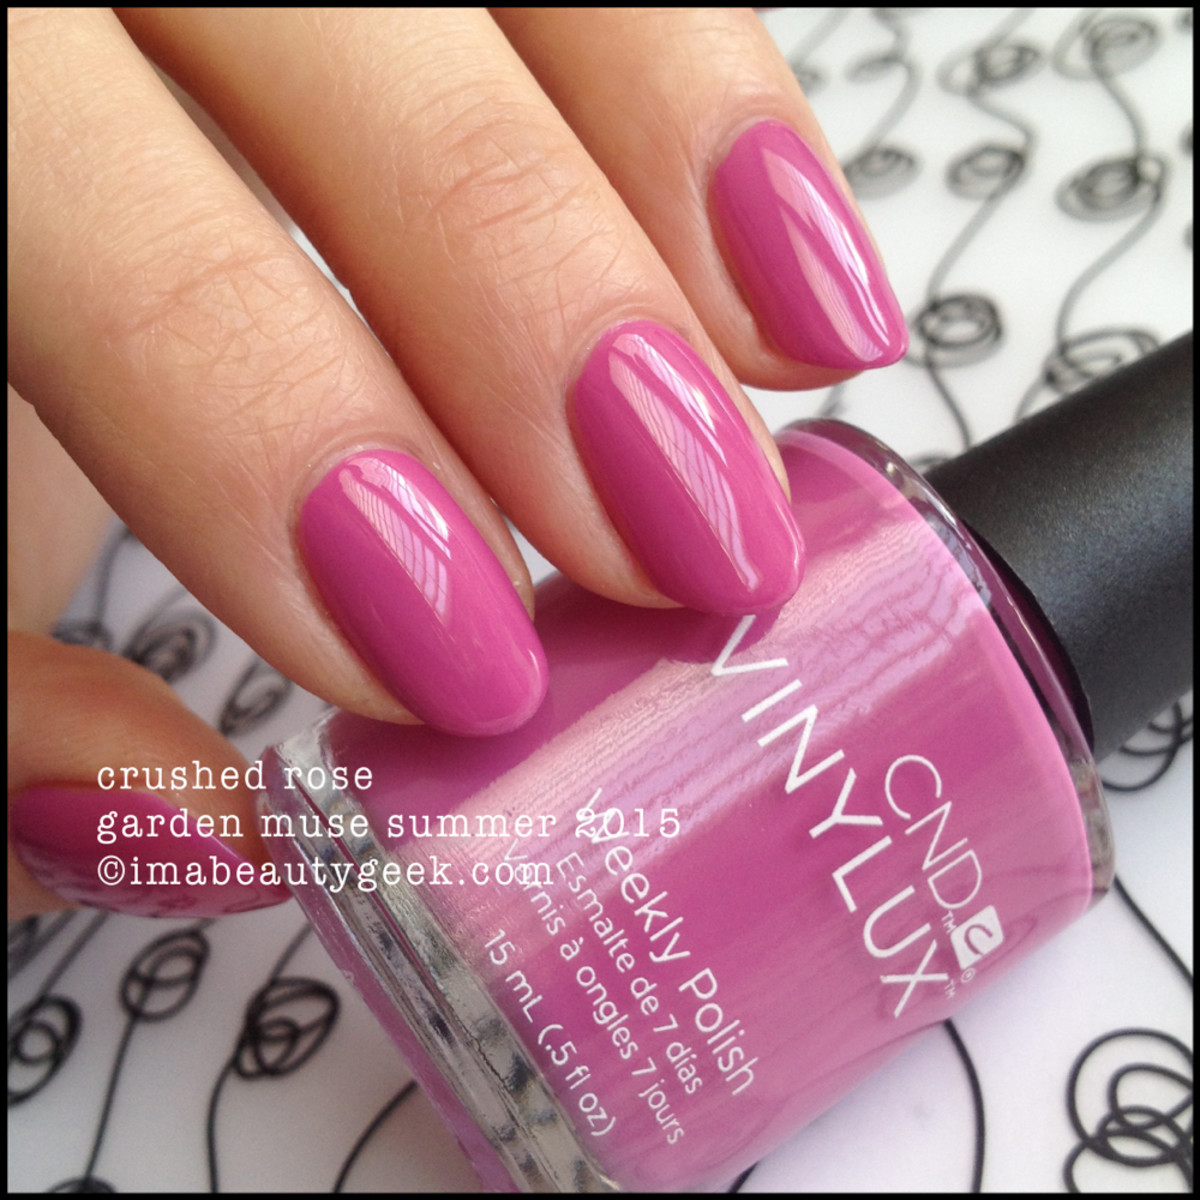 CND Vinylux Garden Muse Crushed Rose 2015